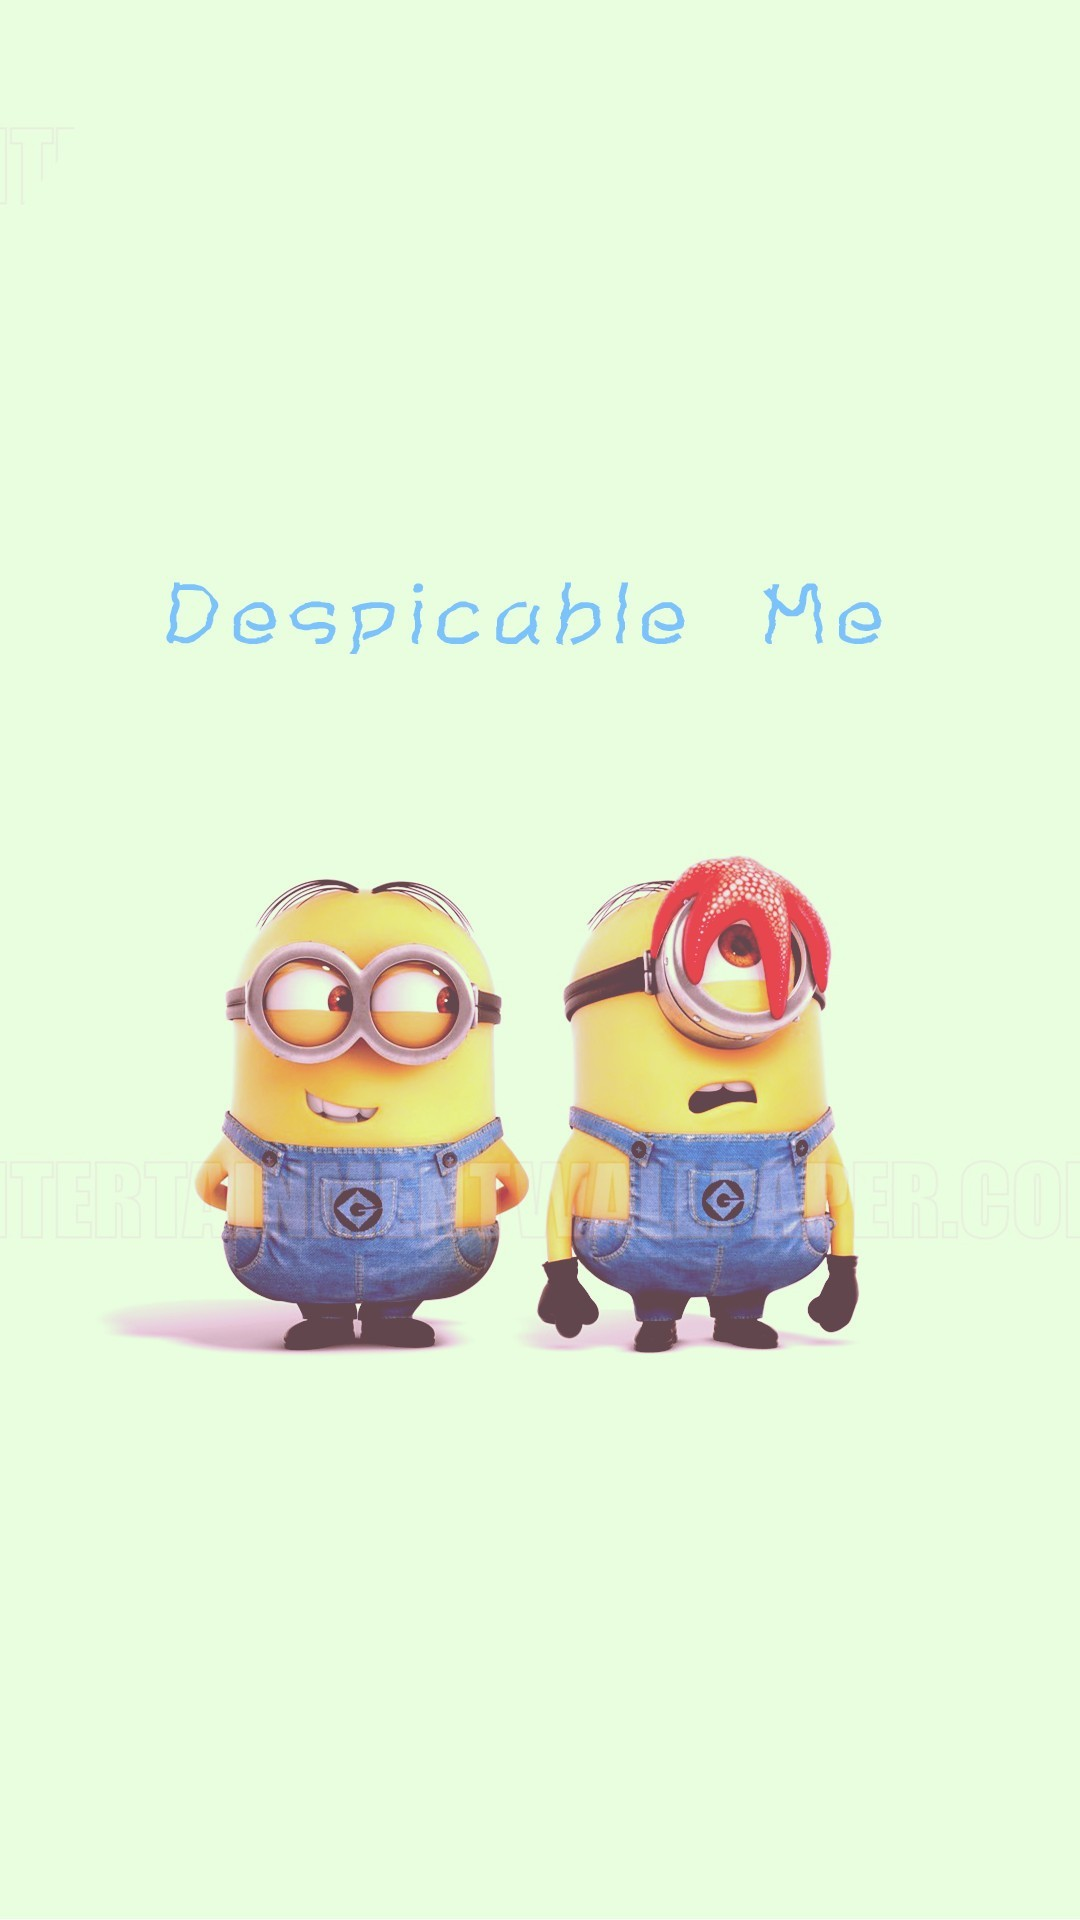 2014 Halloween minion with starfish apple iphone 6 plus wallpaper HD –  Despicable Me #iphone